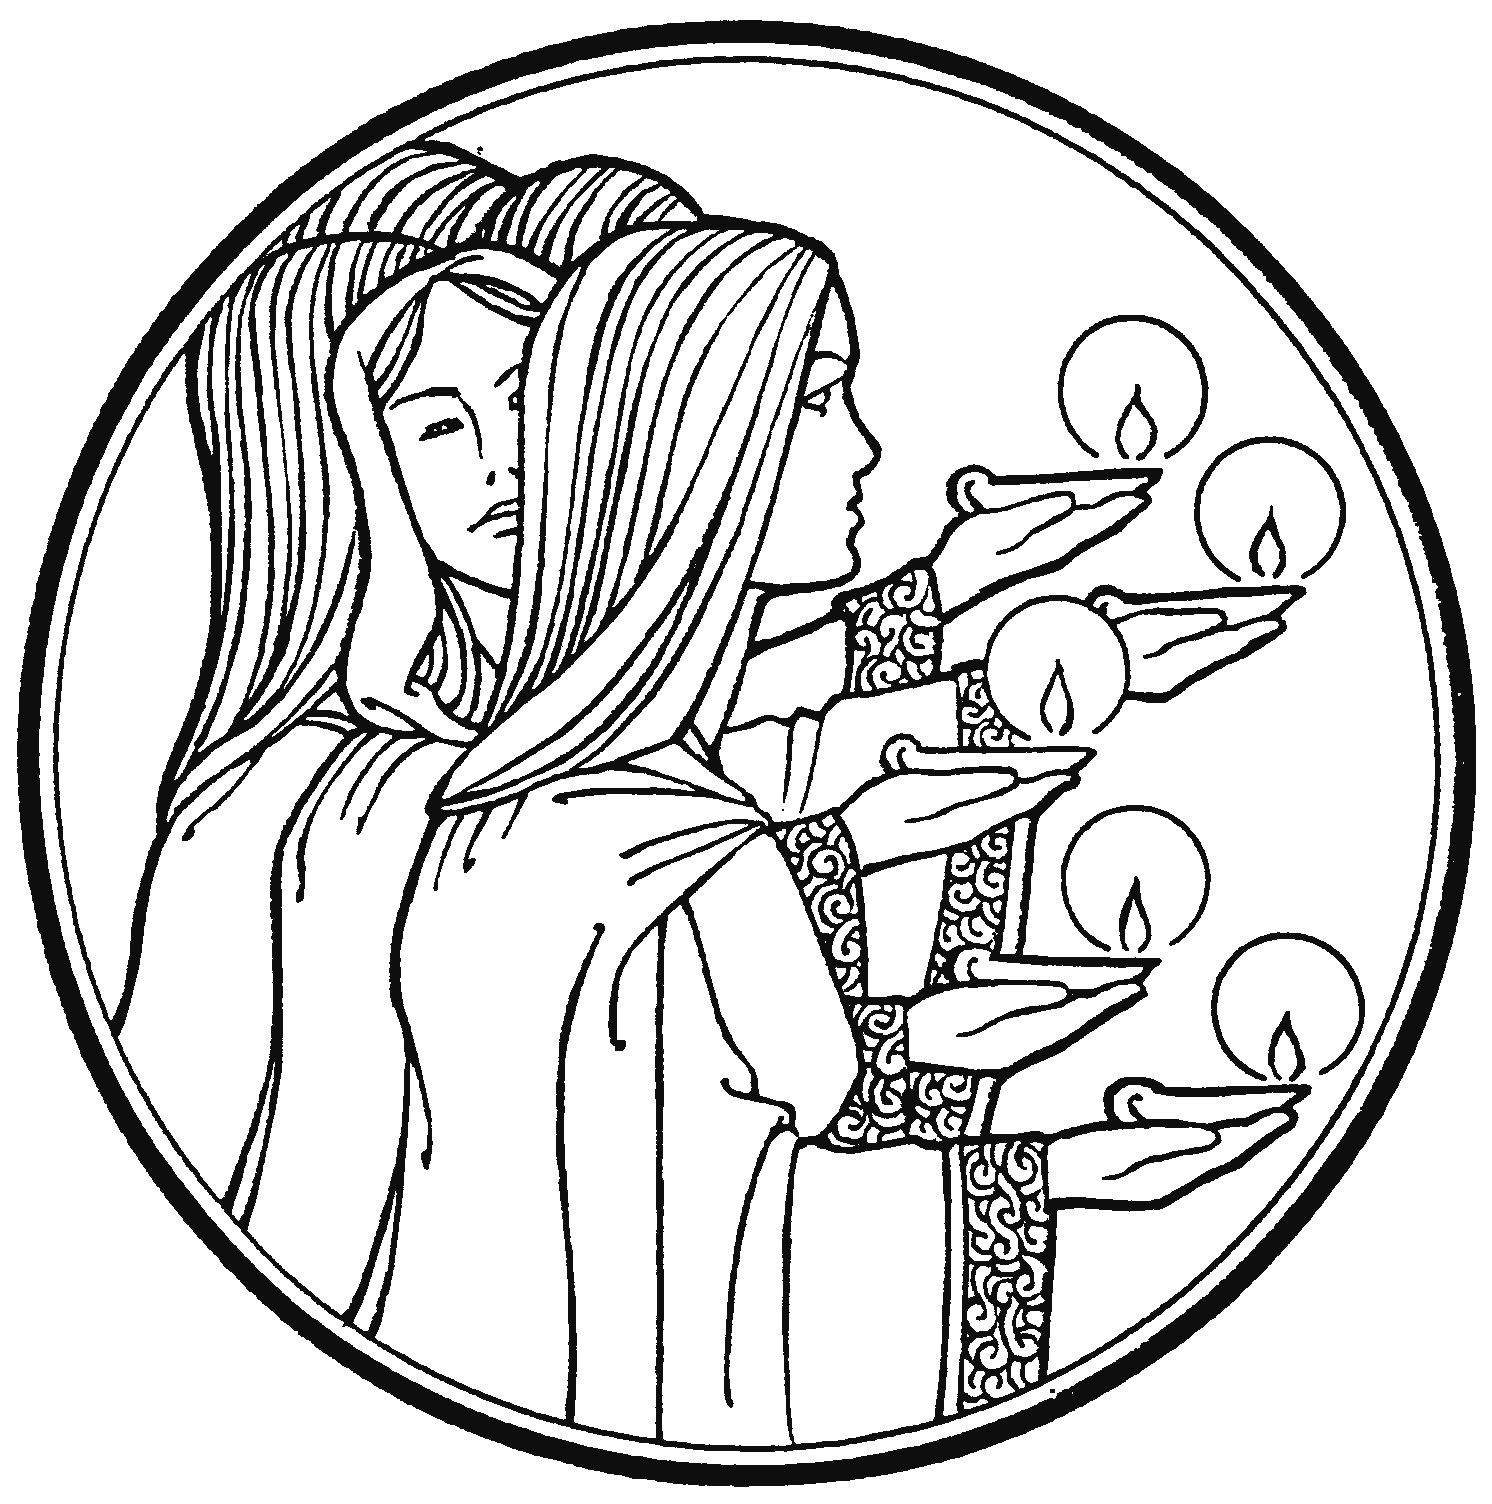 matthew 25 coloring pages - photo#27